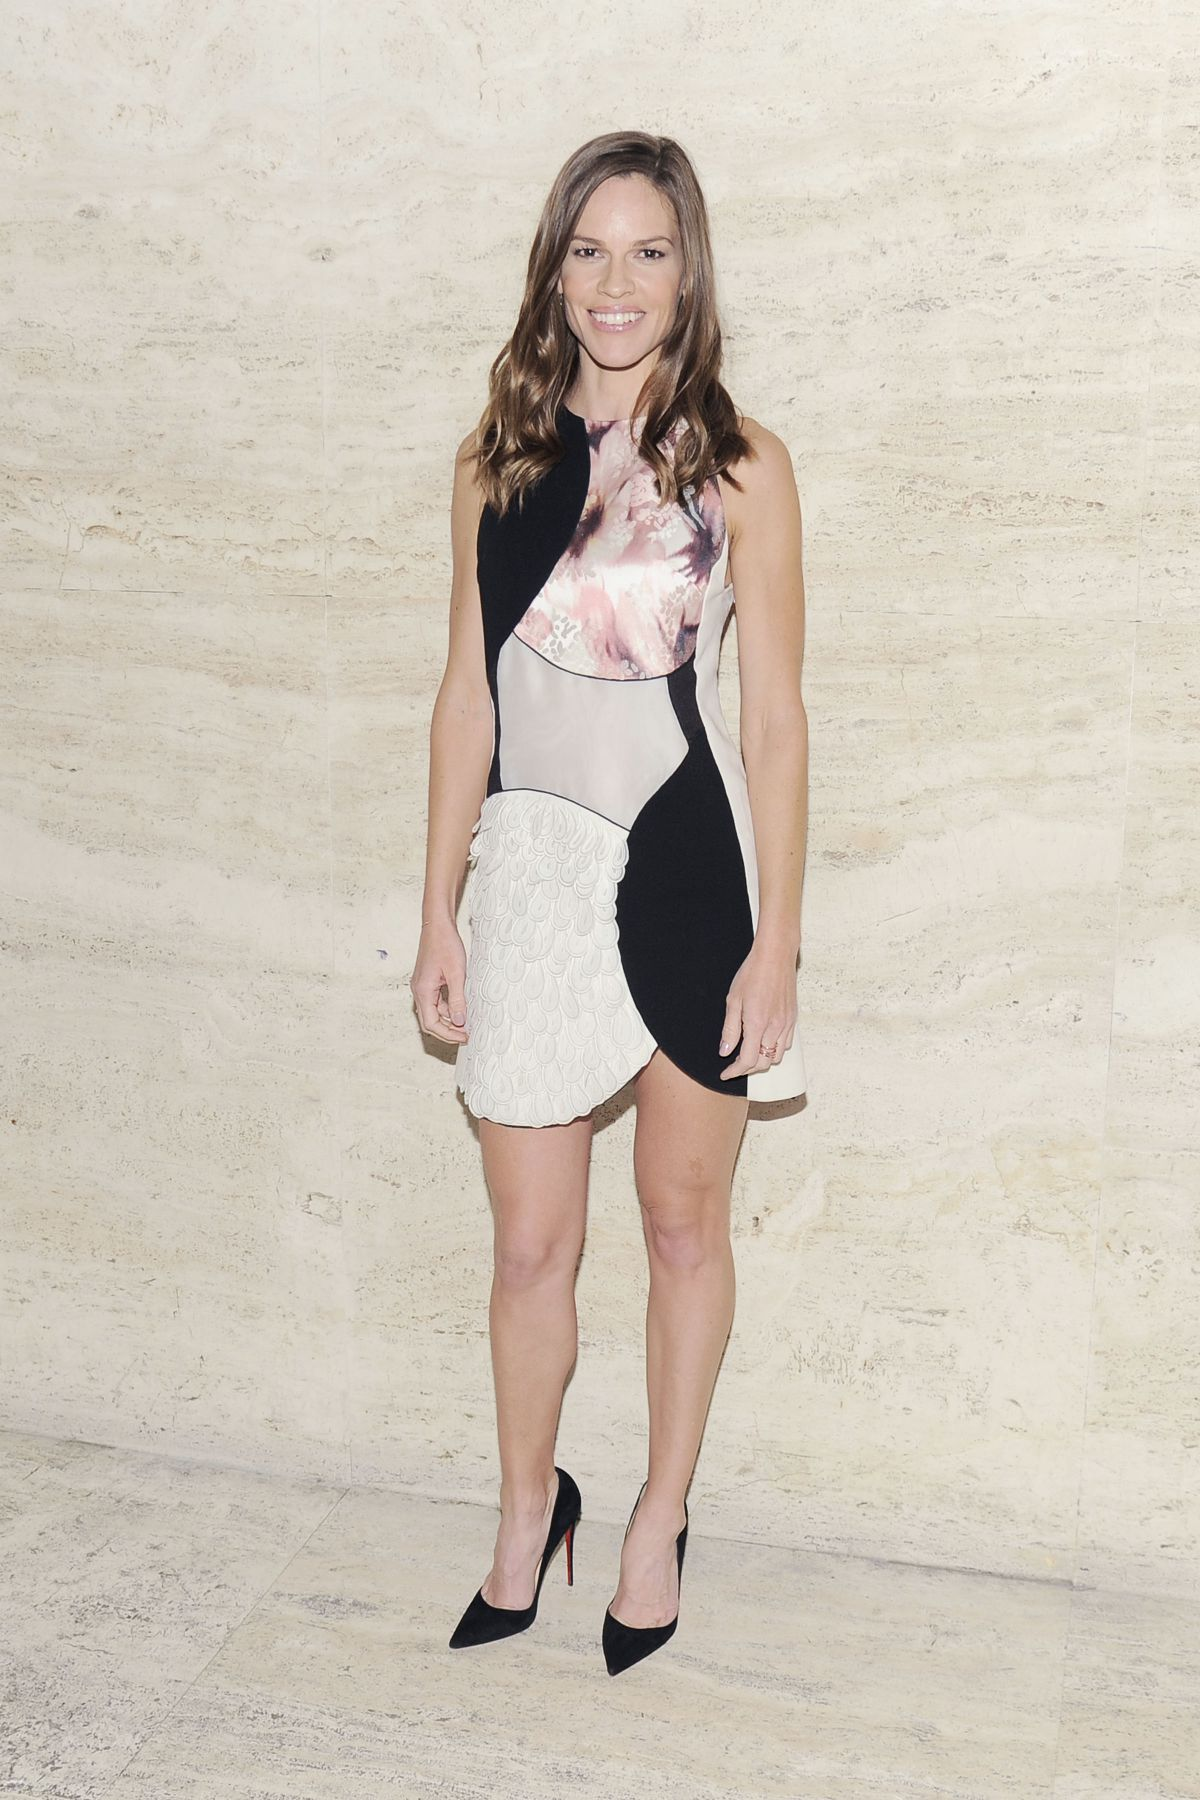 HILARY SWANK at The Hollywood Reporters 35 Most Powerful People in Meadia 2015 in New York